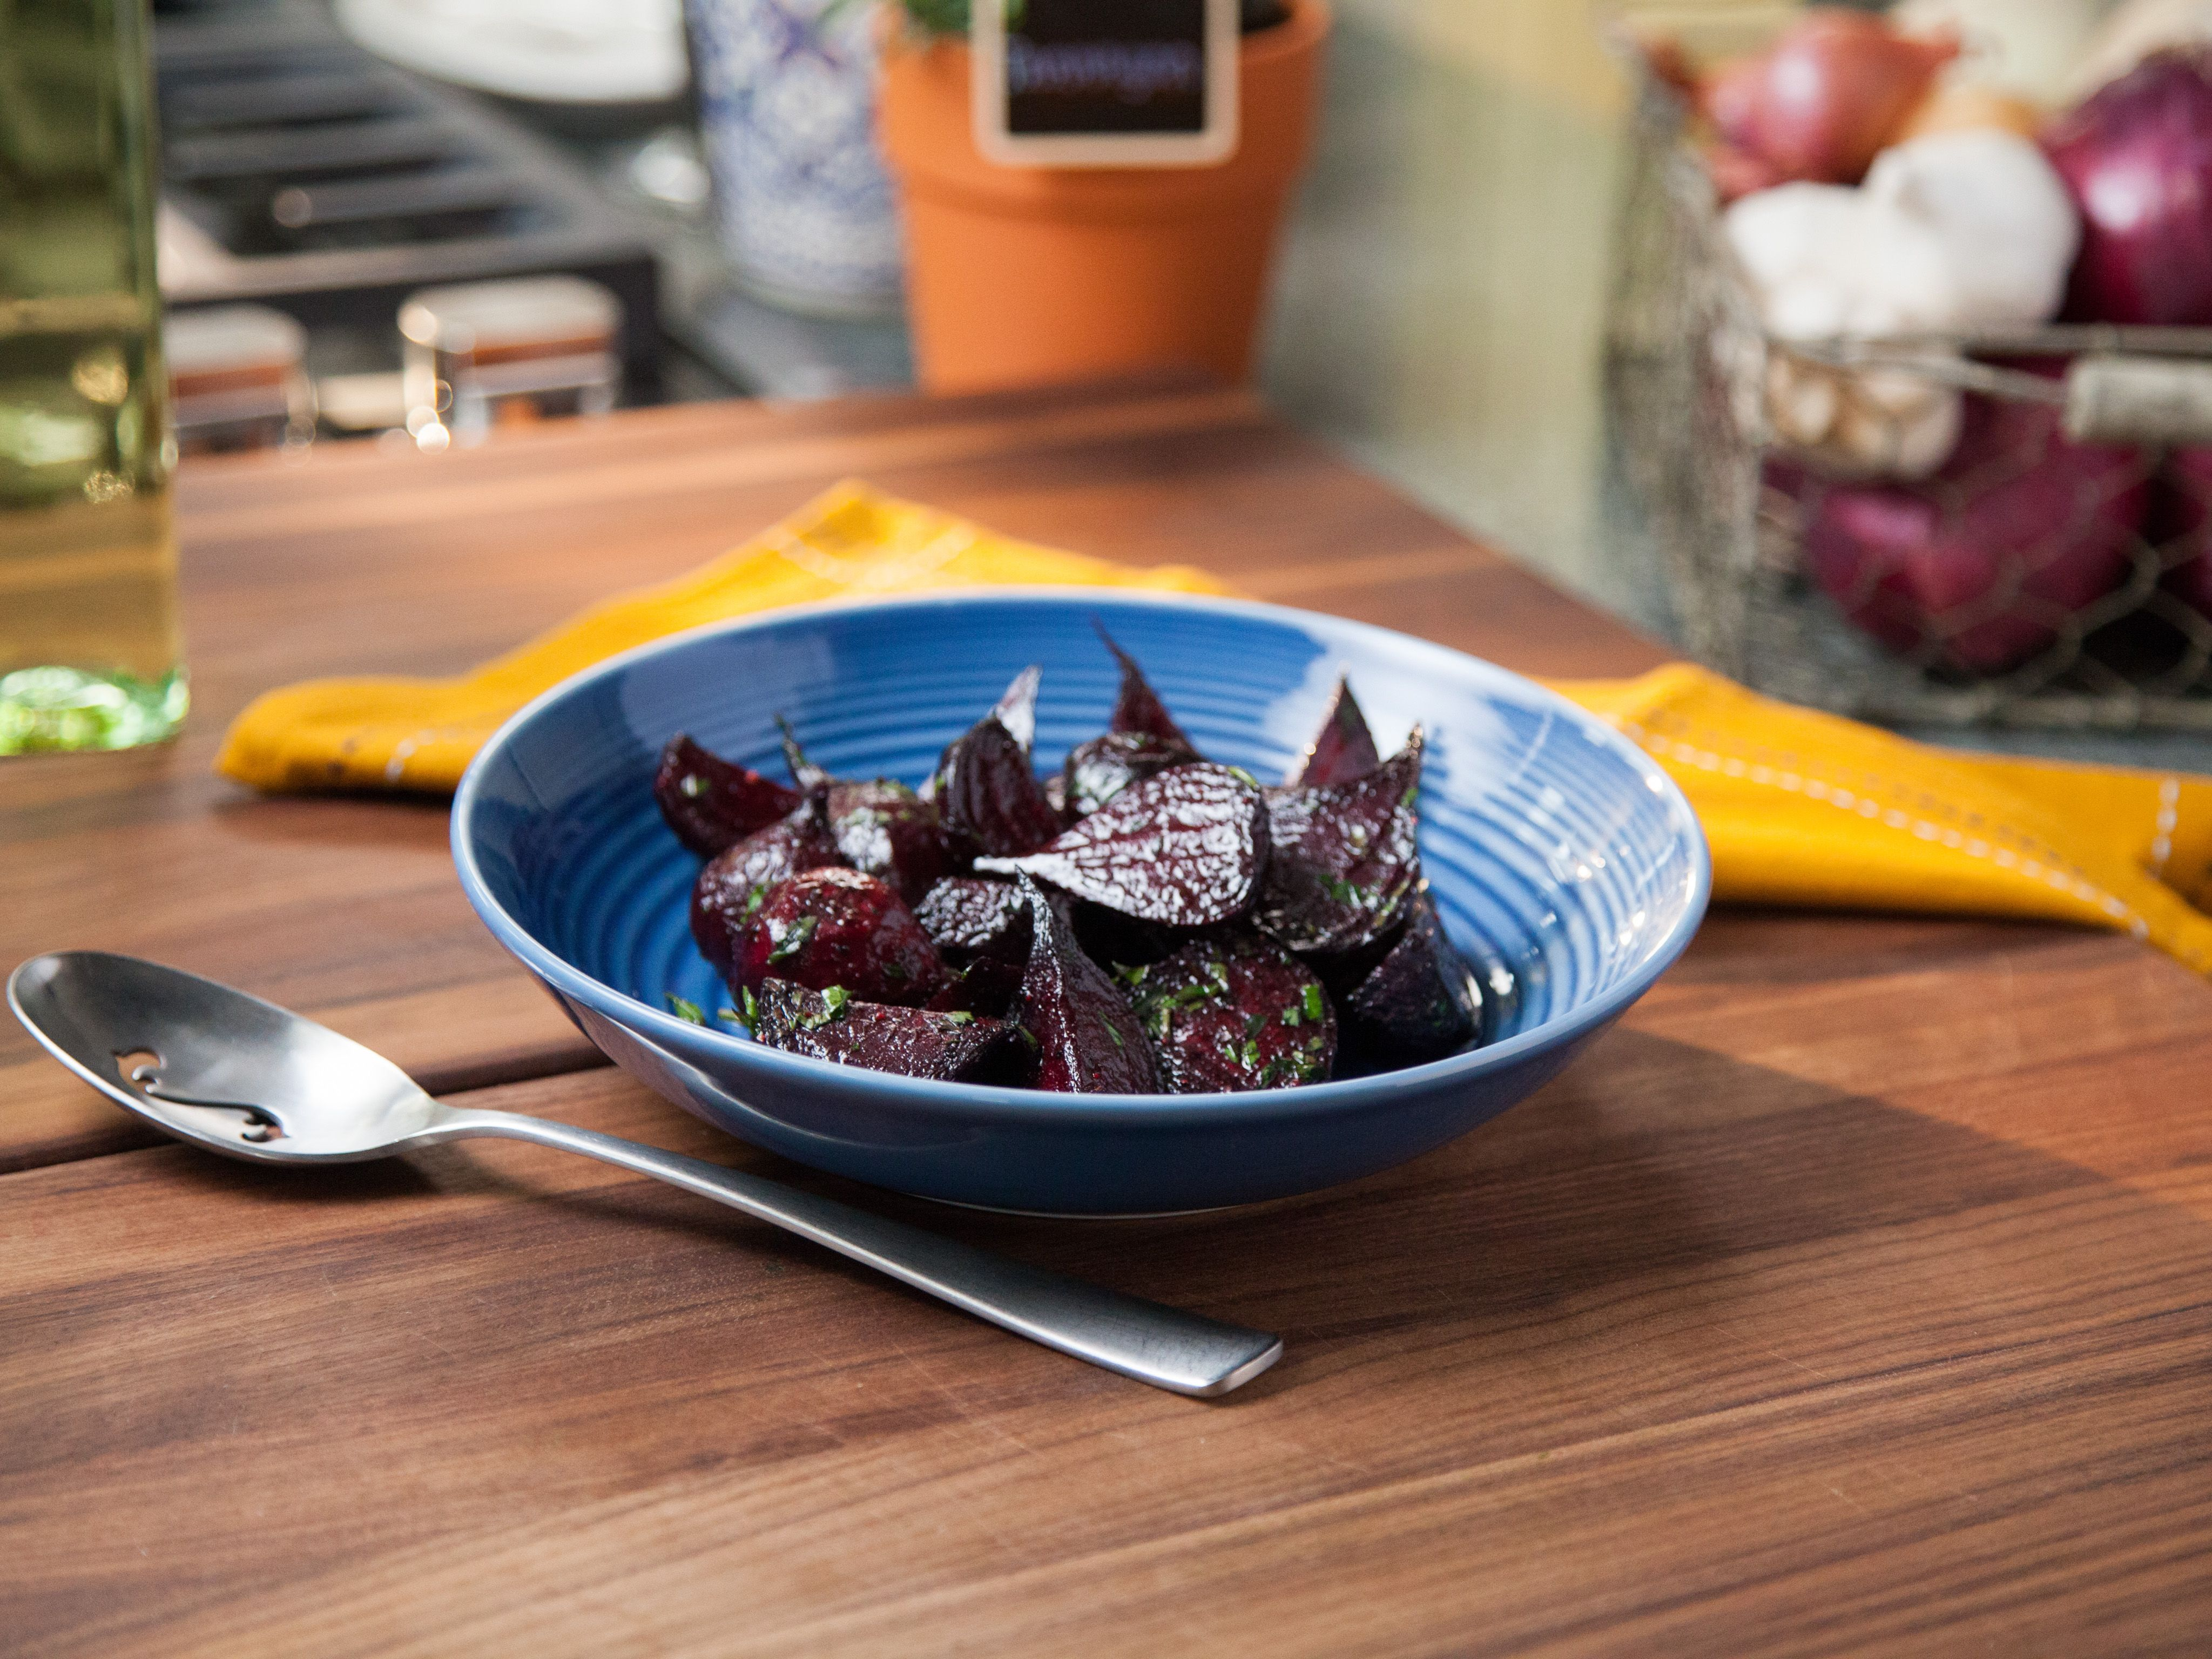 Roasted beets with herbs recipe valerie bertinelli herb get this all star easy to follow roasted beets with herbs recipe forumfinder Choice Image